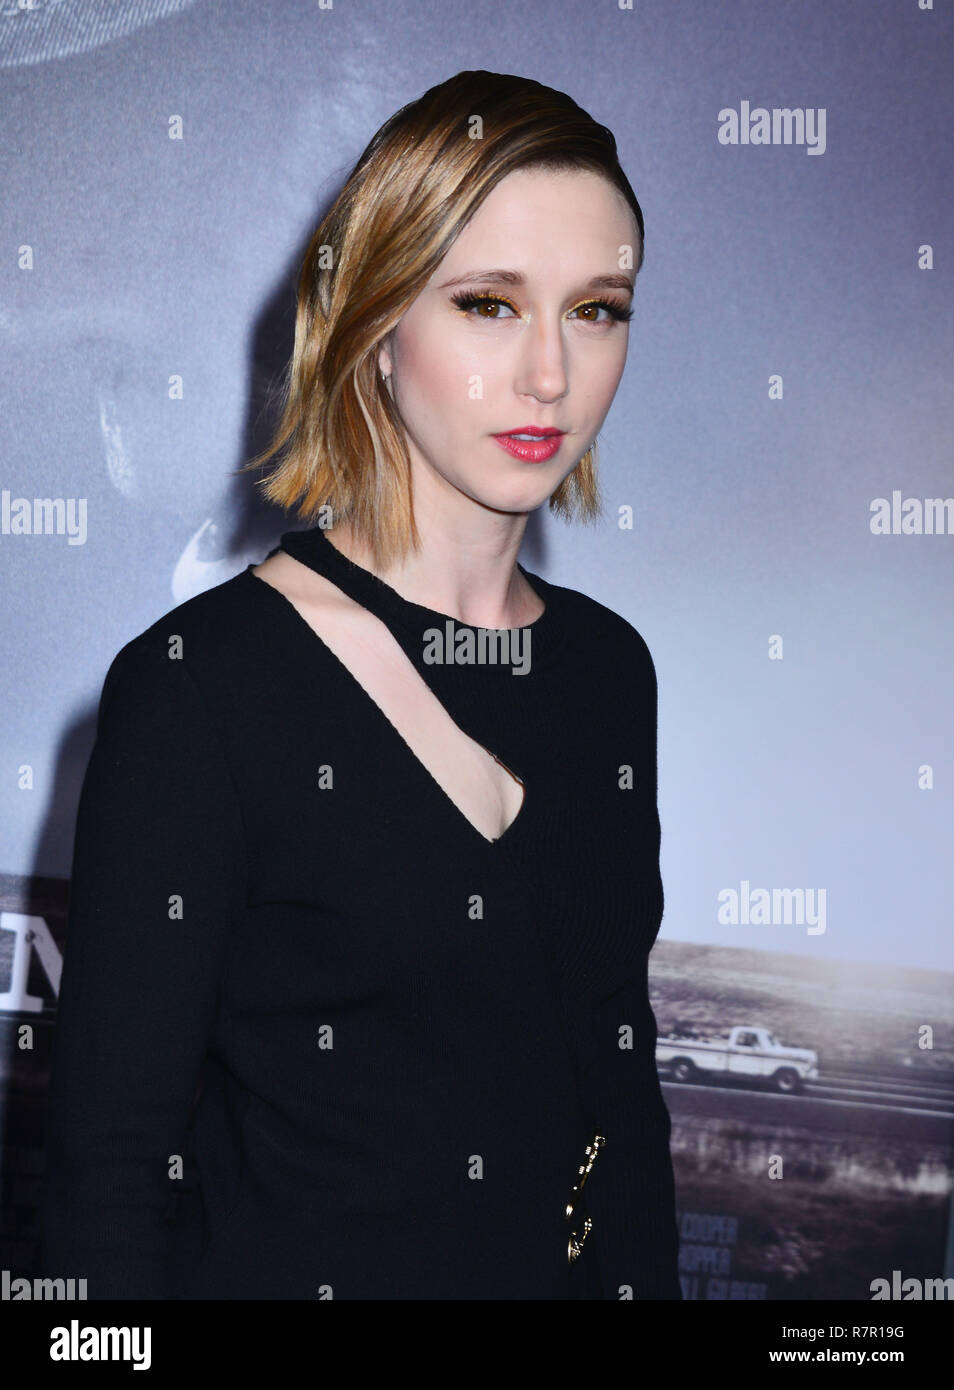 Westwood, California, USA. 10th Dec 2018. Taissa Farmiga 186 attends Warner Bros. Pictures World Premiere Of 'The Mule' at Regency Village Theatre on December 10, 2018 in Westwood, California. Credit: Tsuni / USA/Alamy Live News - Stock Image